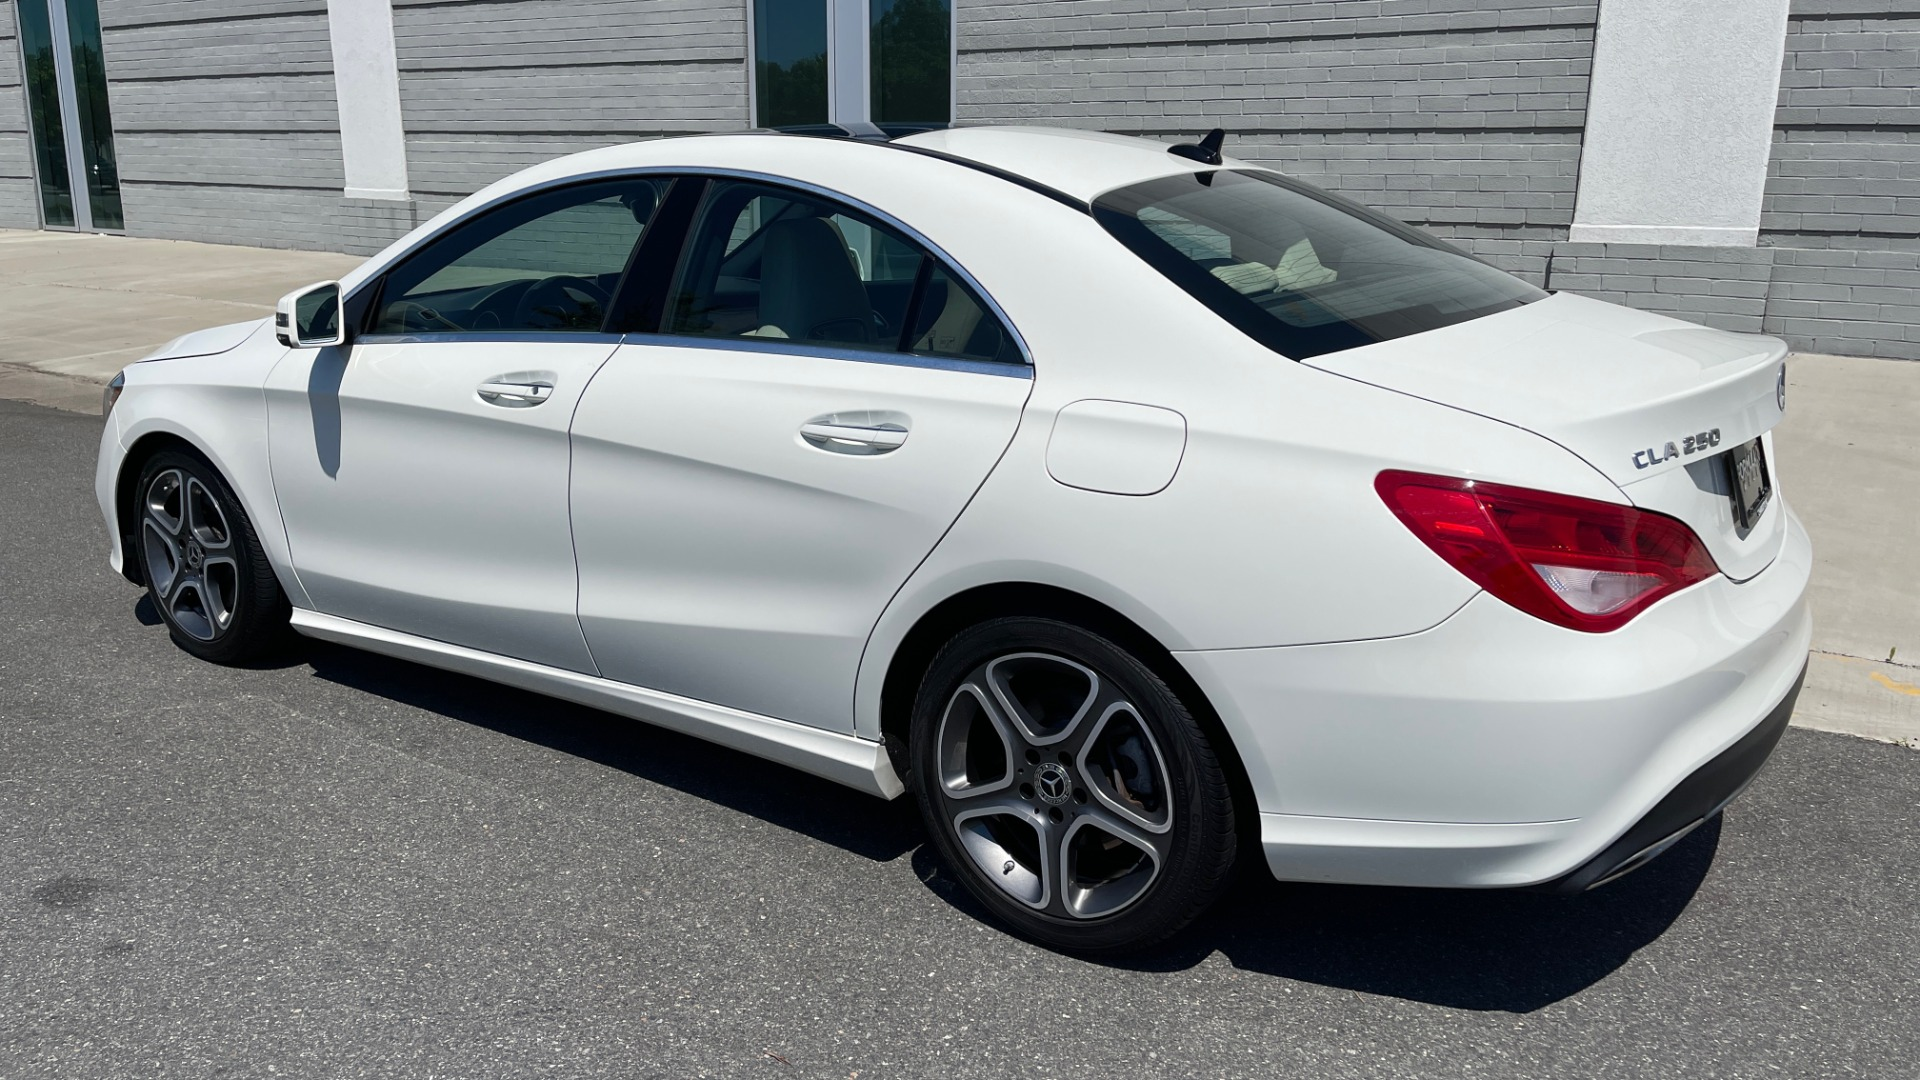 Used 2018 Mercedes-Benz CLA 250 PREMIUM / CONV PKG / APPLE / PANO-ROOF / REARVIEW for sale $29,795 at Formula Imports in Charlotte NC 28227 5